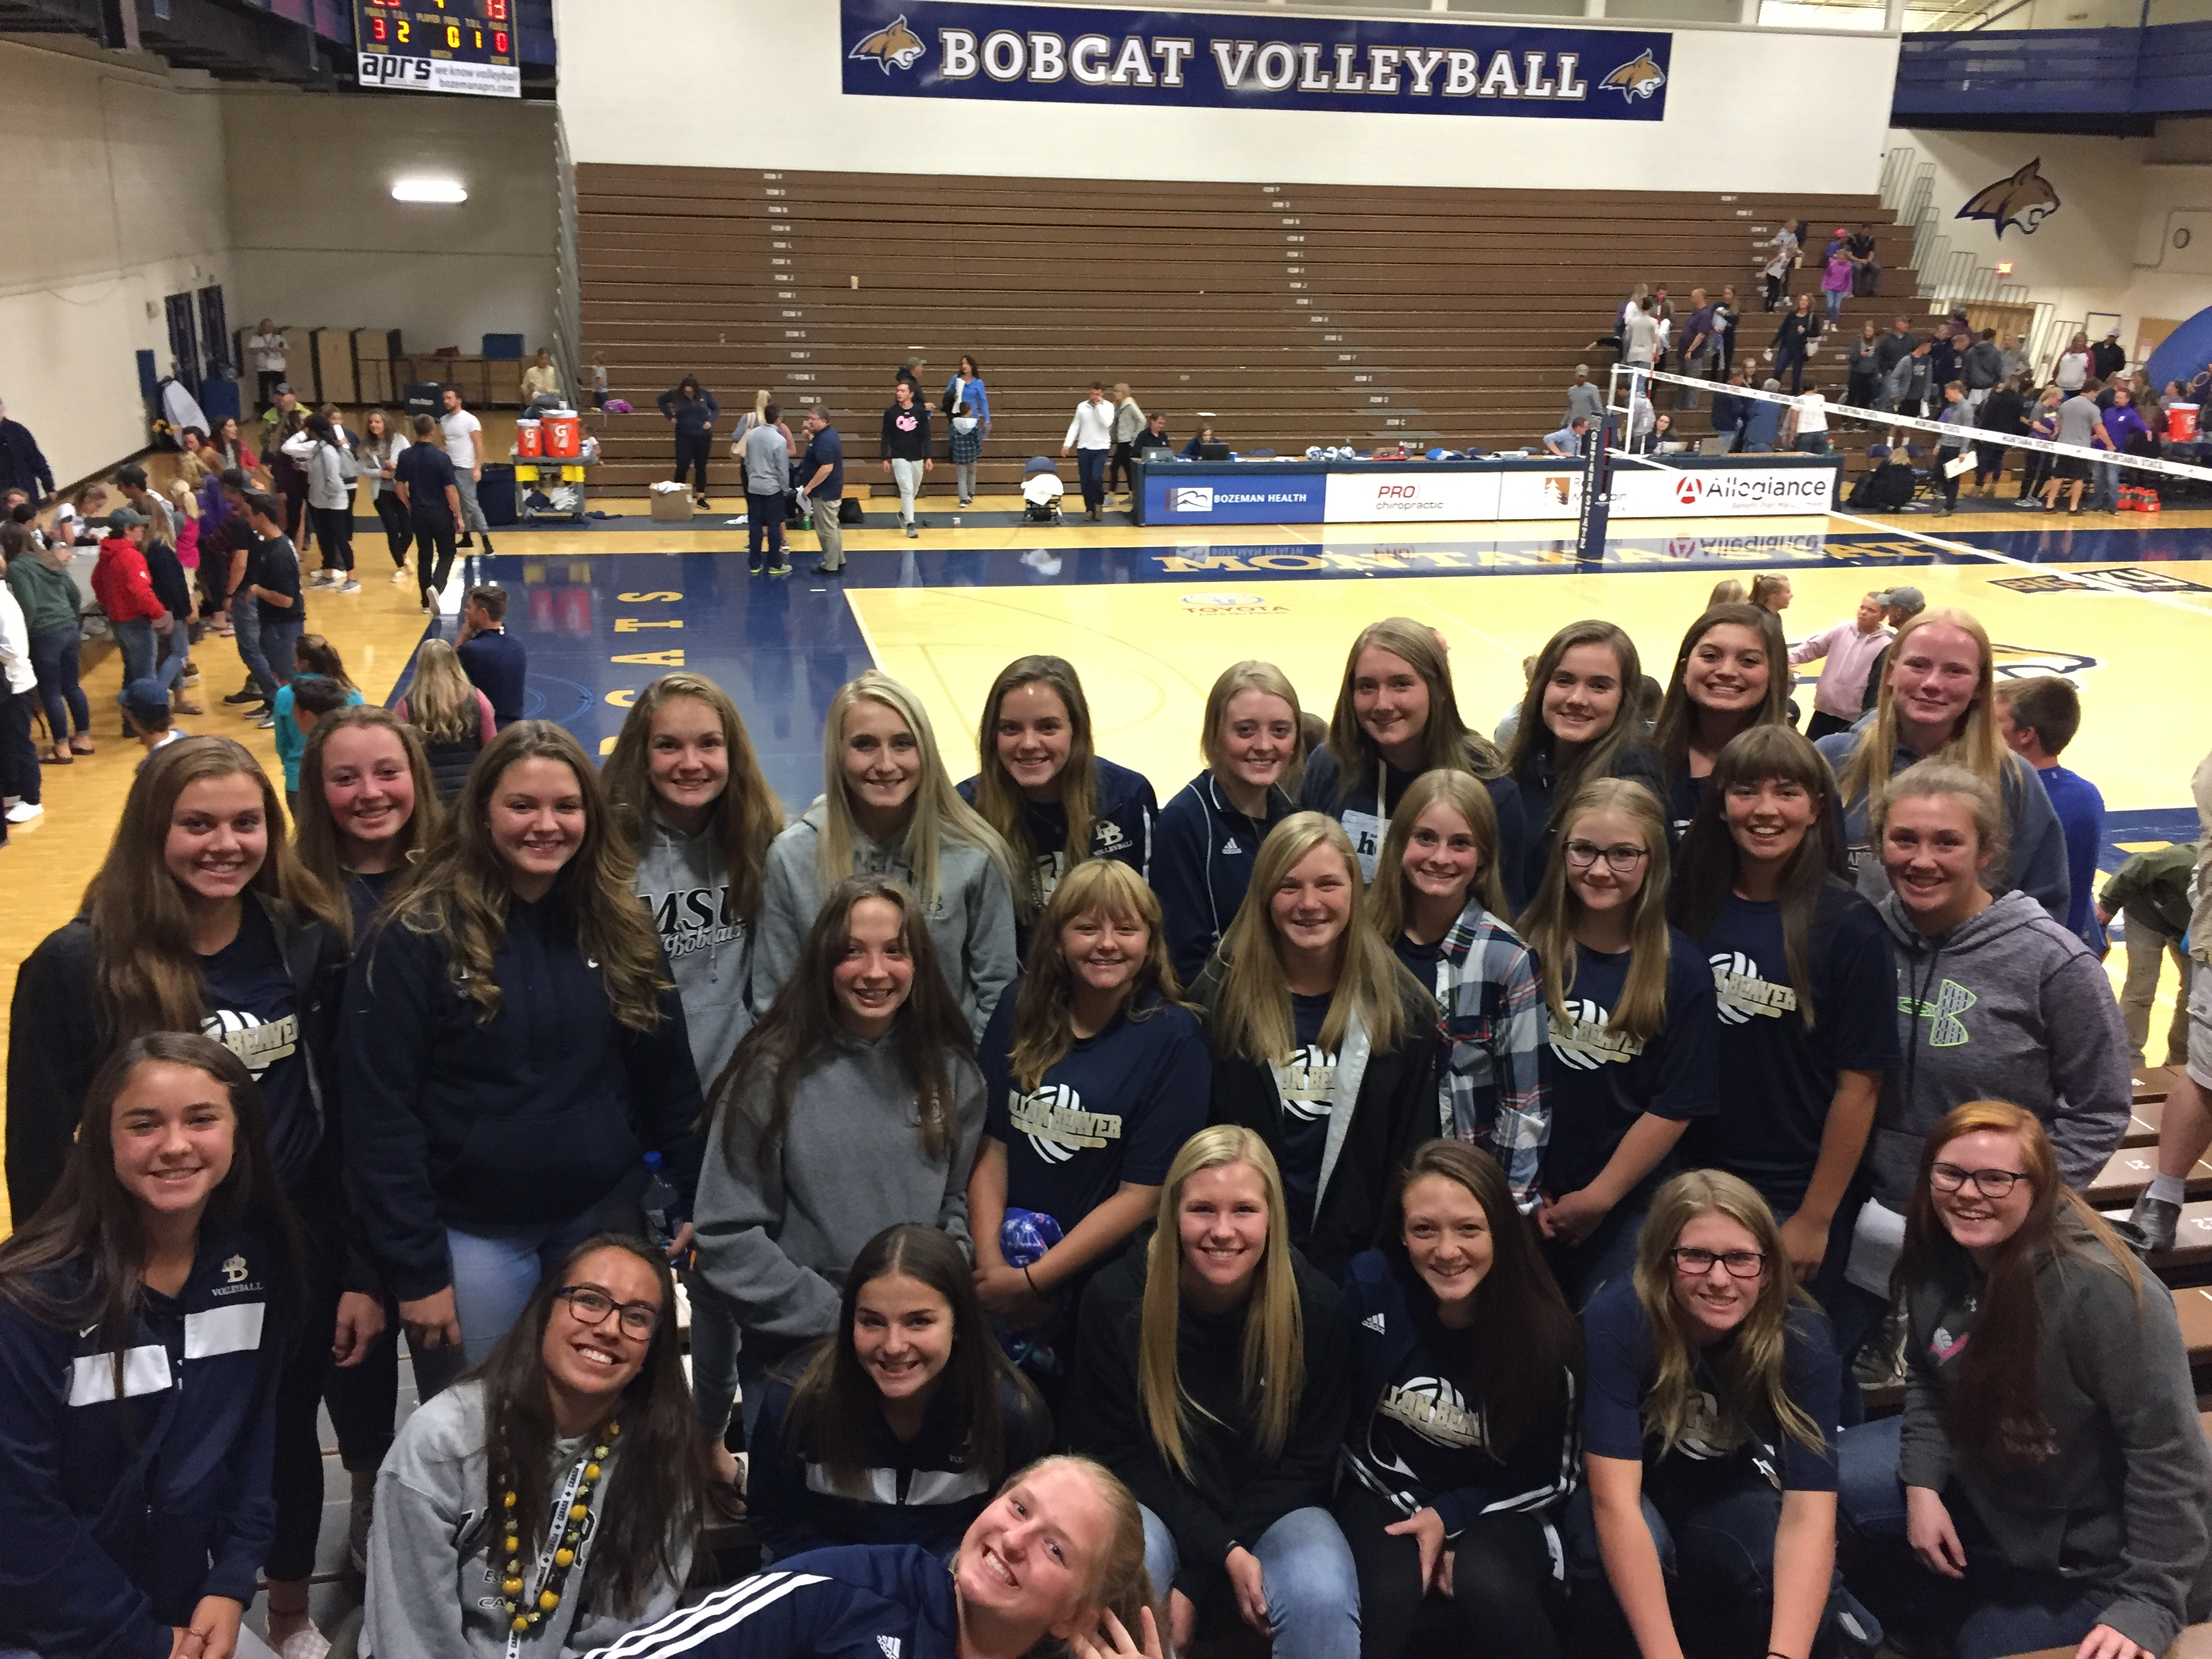 A photo of the volleyball team on a trip to watch the MSU Bobcats in August 2018